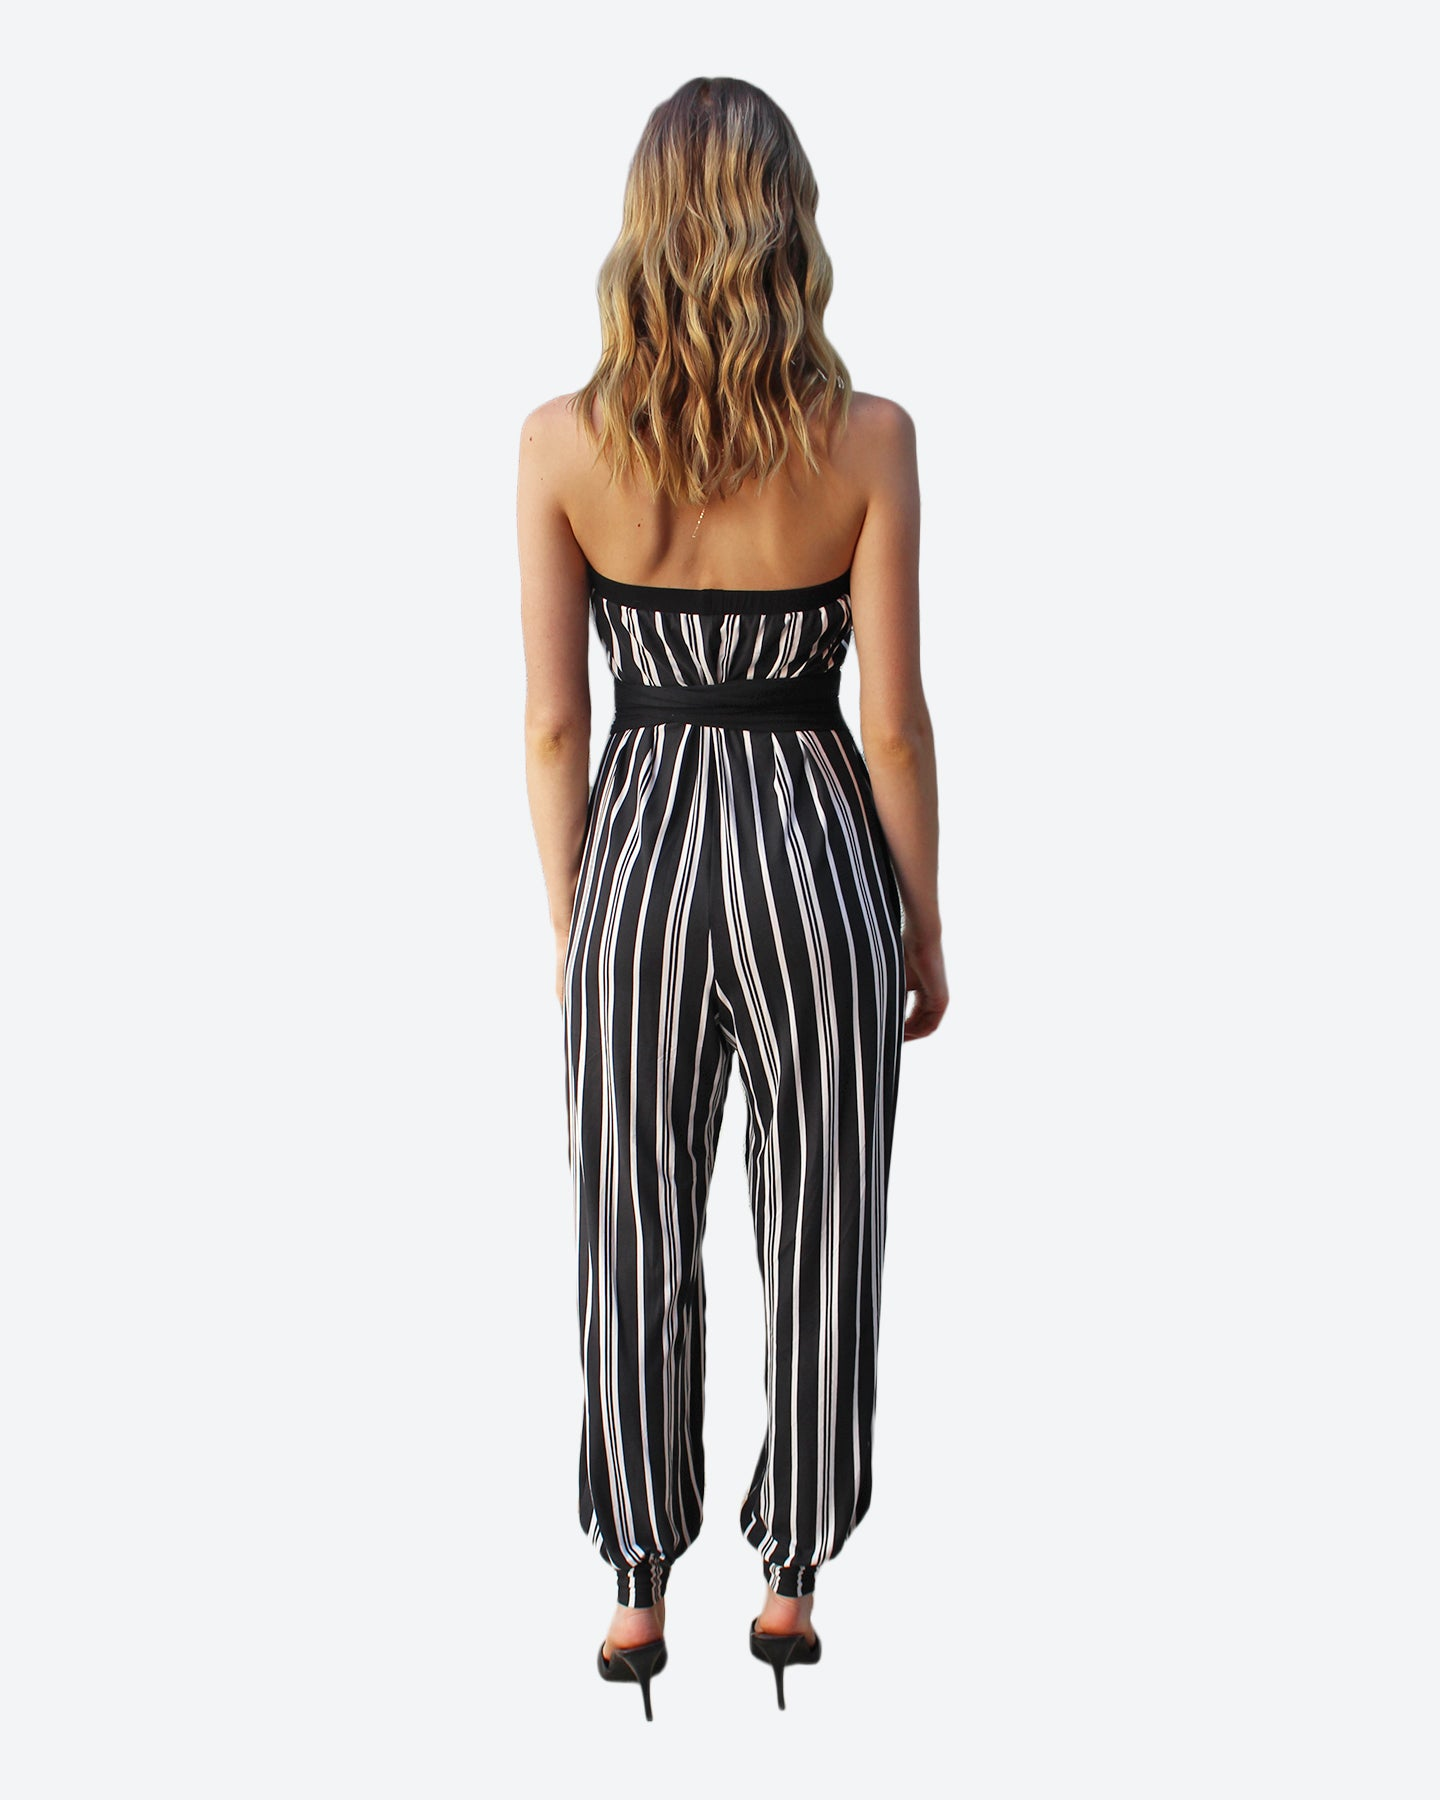 Striped Palm Springs Jumpsuit w/Sash